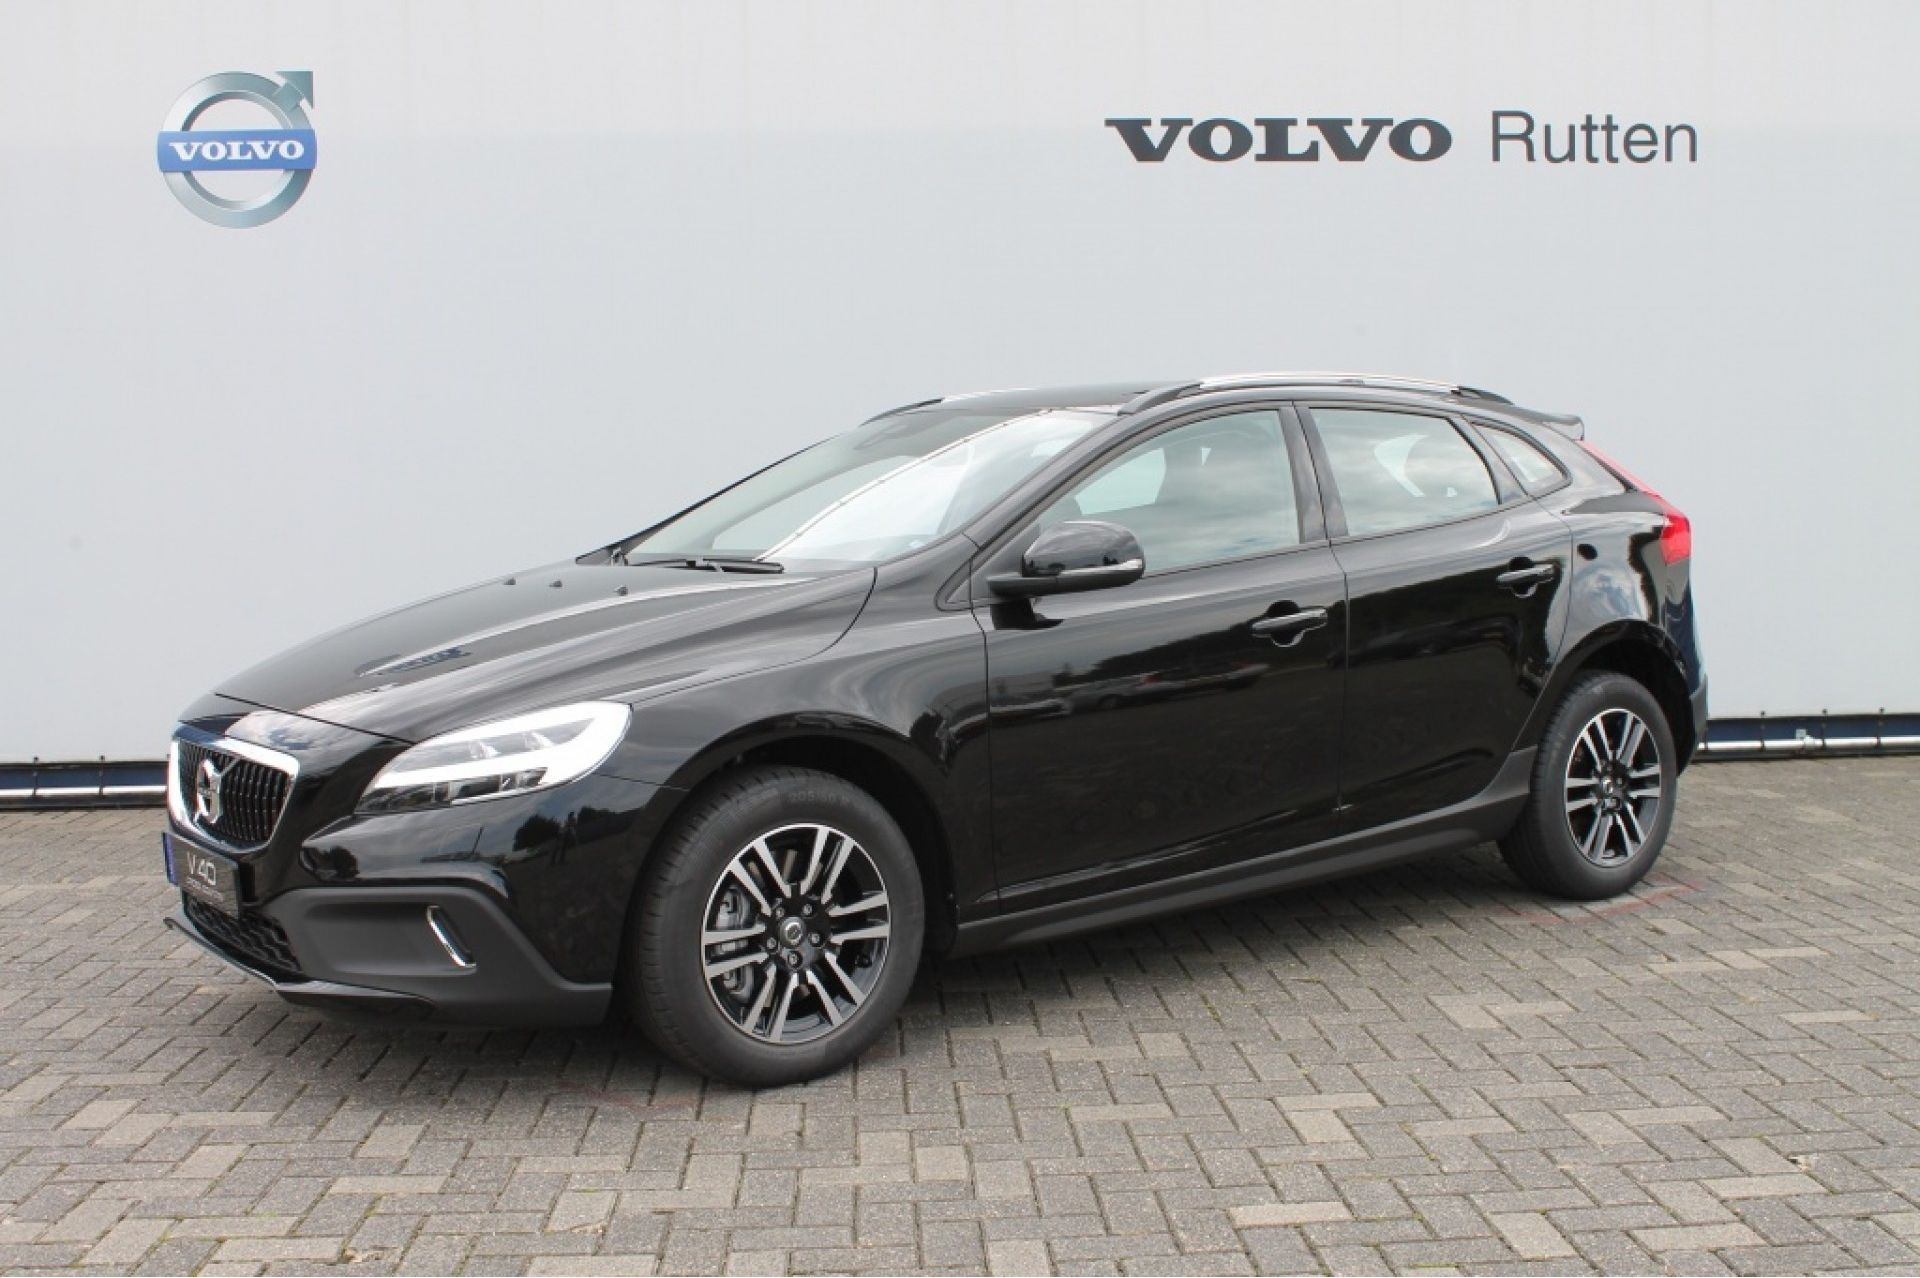 volvo v40 cross country t3 geartronic nordic volvo rutten. Black Bedroom Furniture Sets. Home Design Ideas